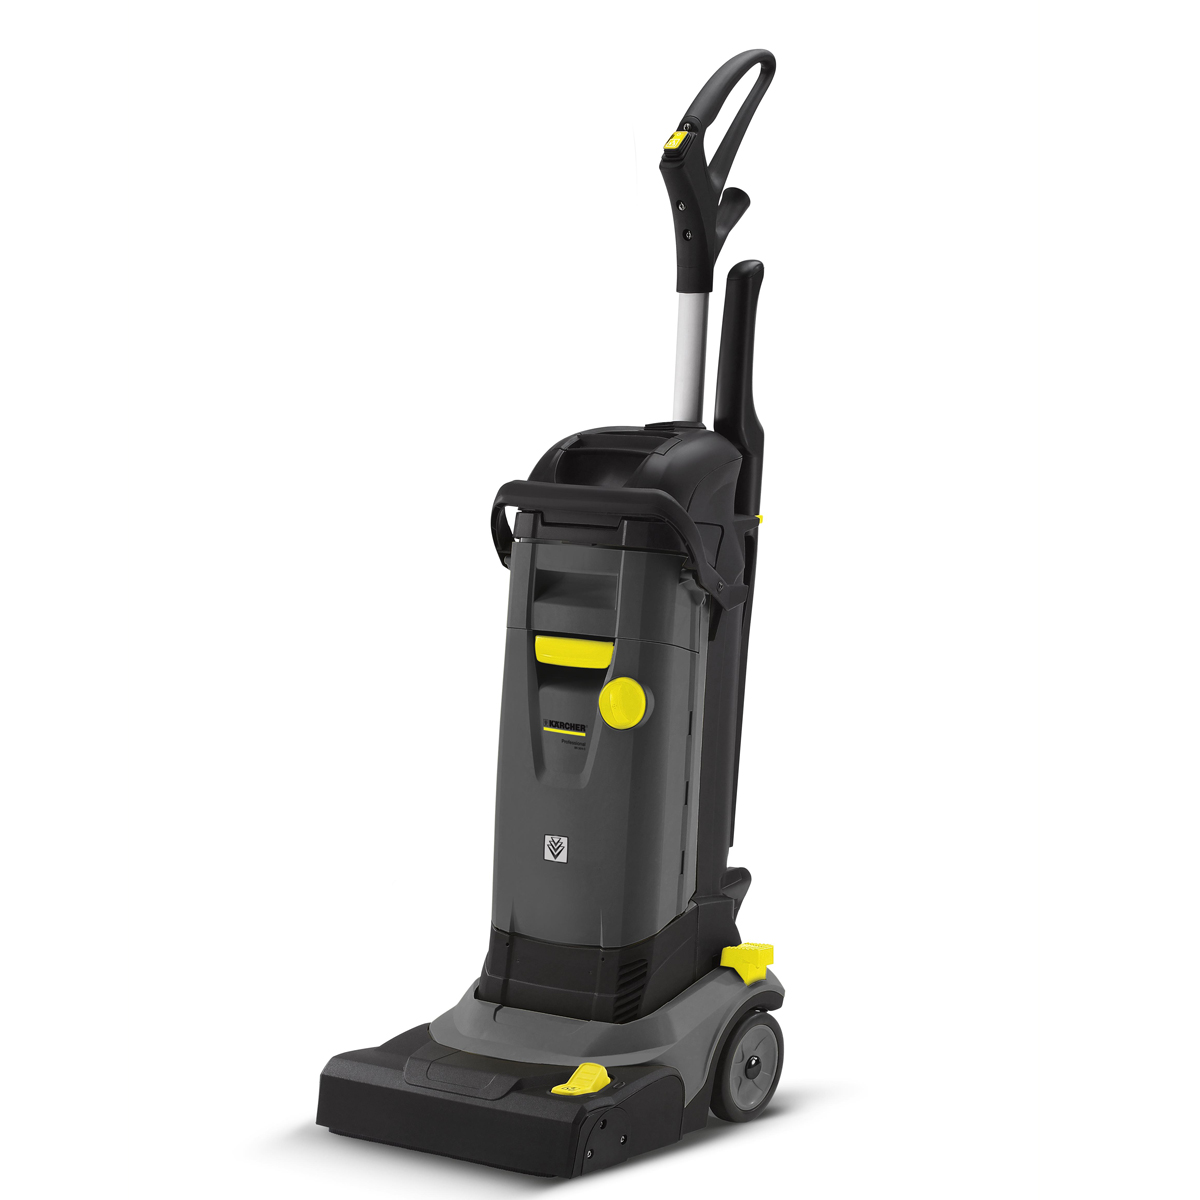 Two Step Pad Center Snap Karcher 8.600-507.0 Lock